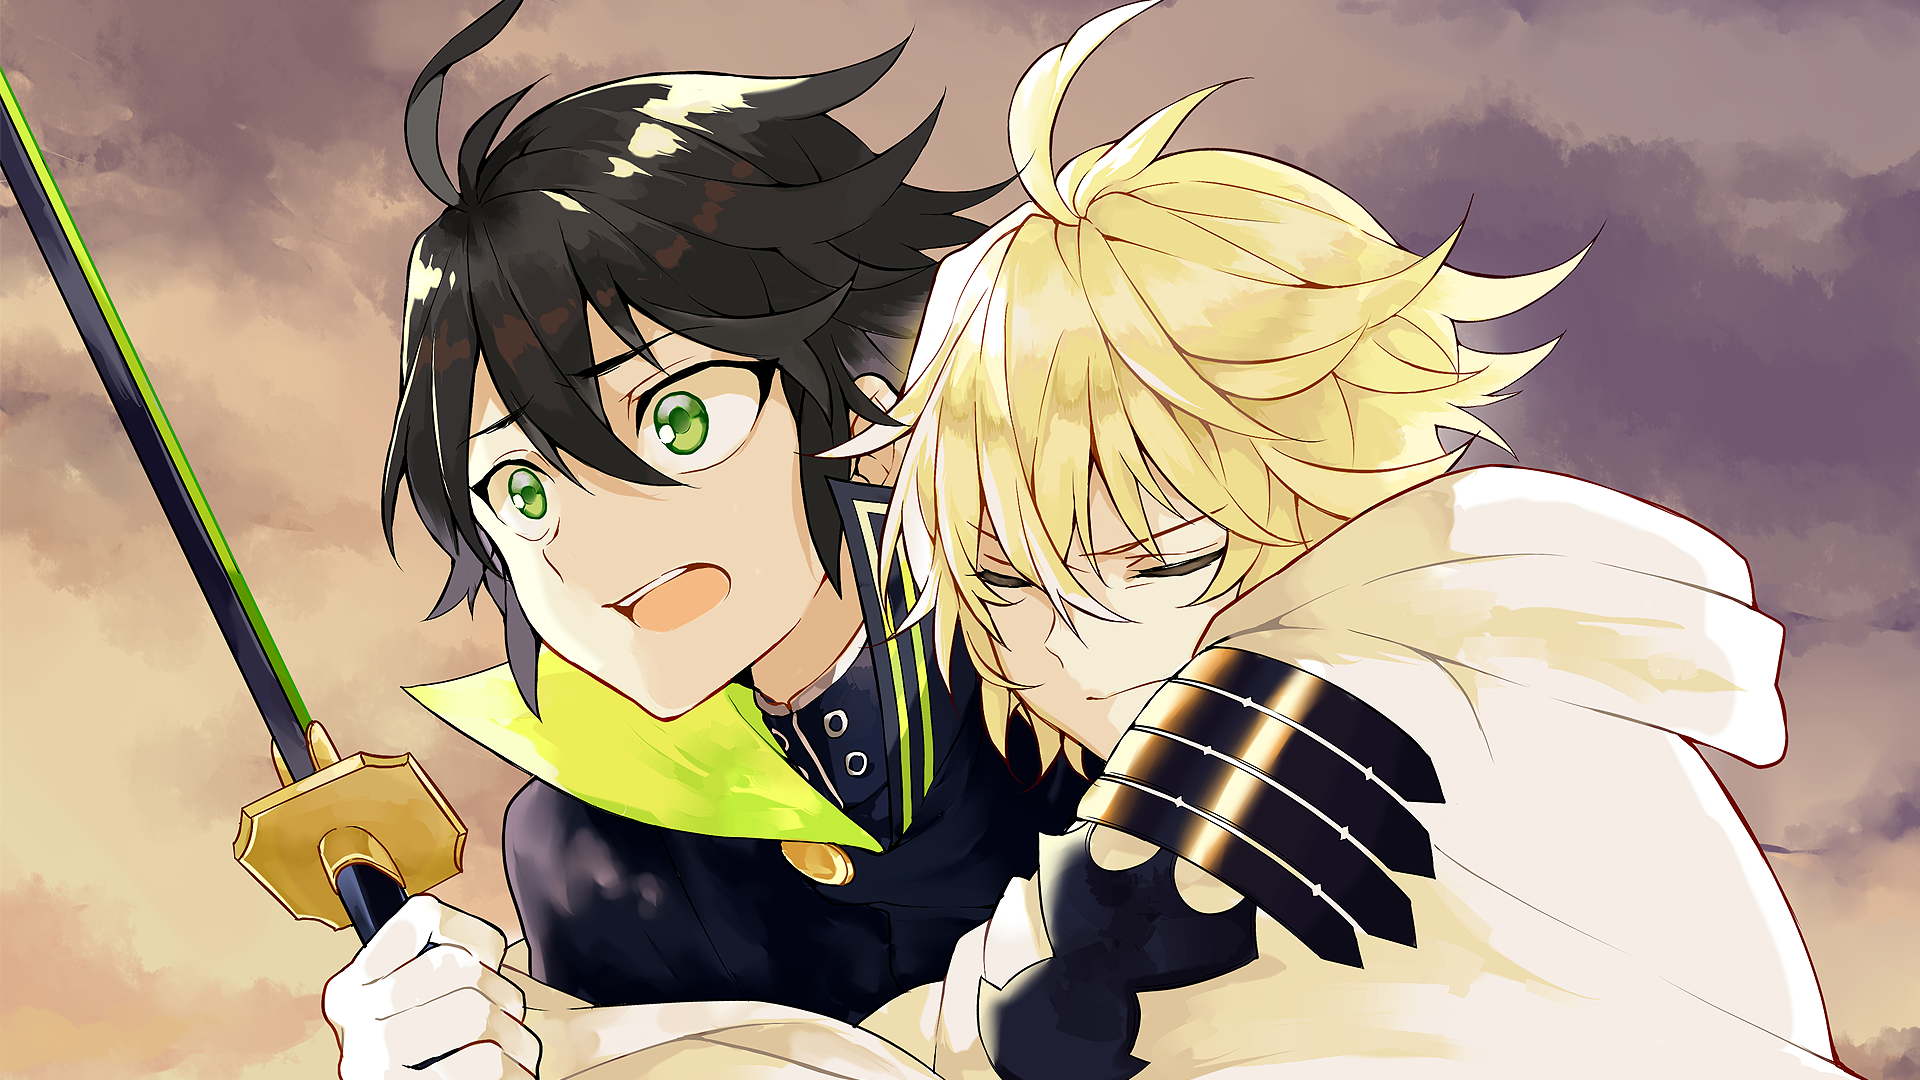 46 Seraph Of The End Hd Wallpapers Backgrounds Wallpaper Abyss Mikaela Hyakuya Owari No Seraph Seraph Of The End